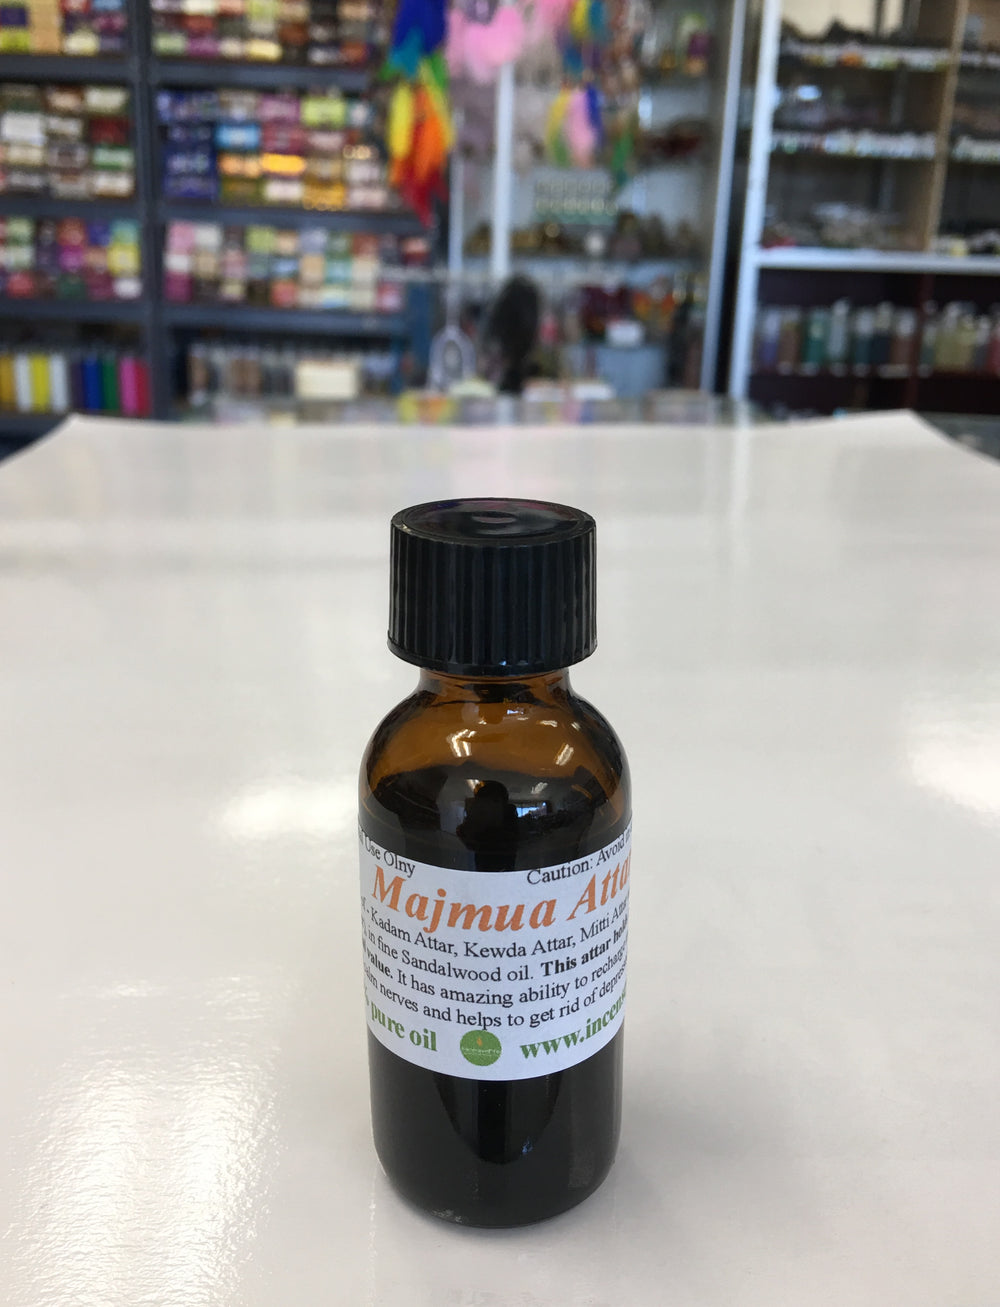 Buy Original Majuma Essential Oil